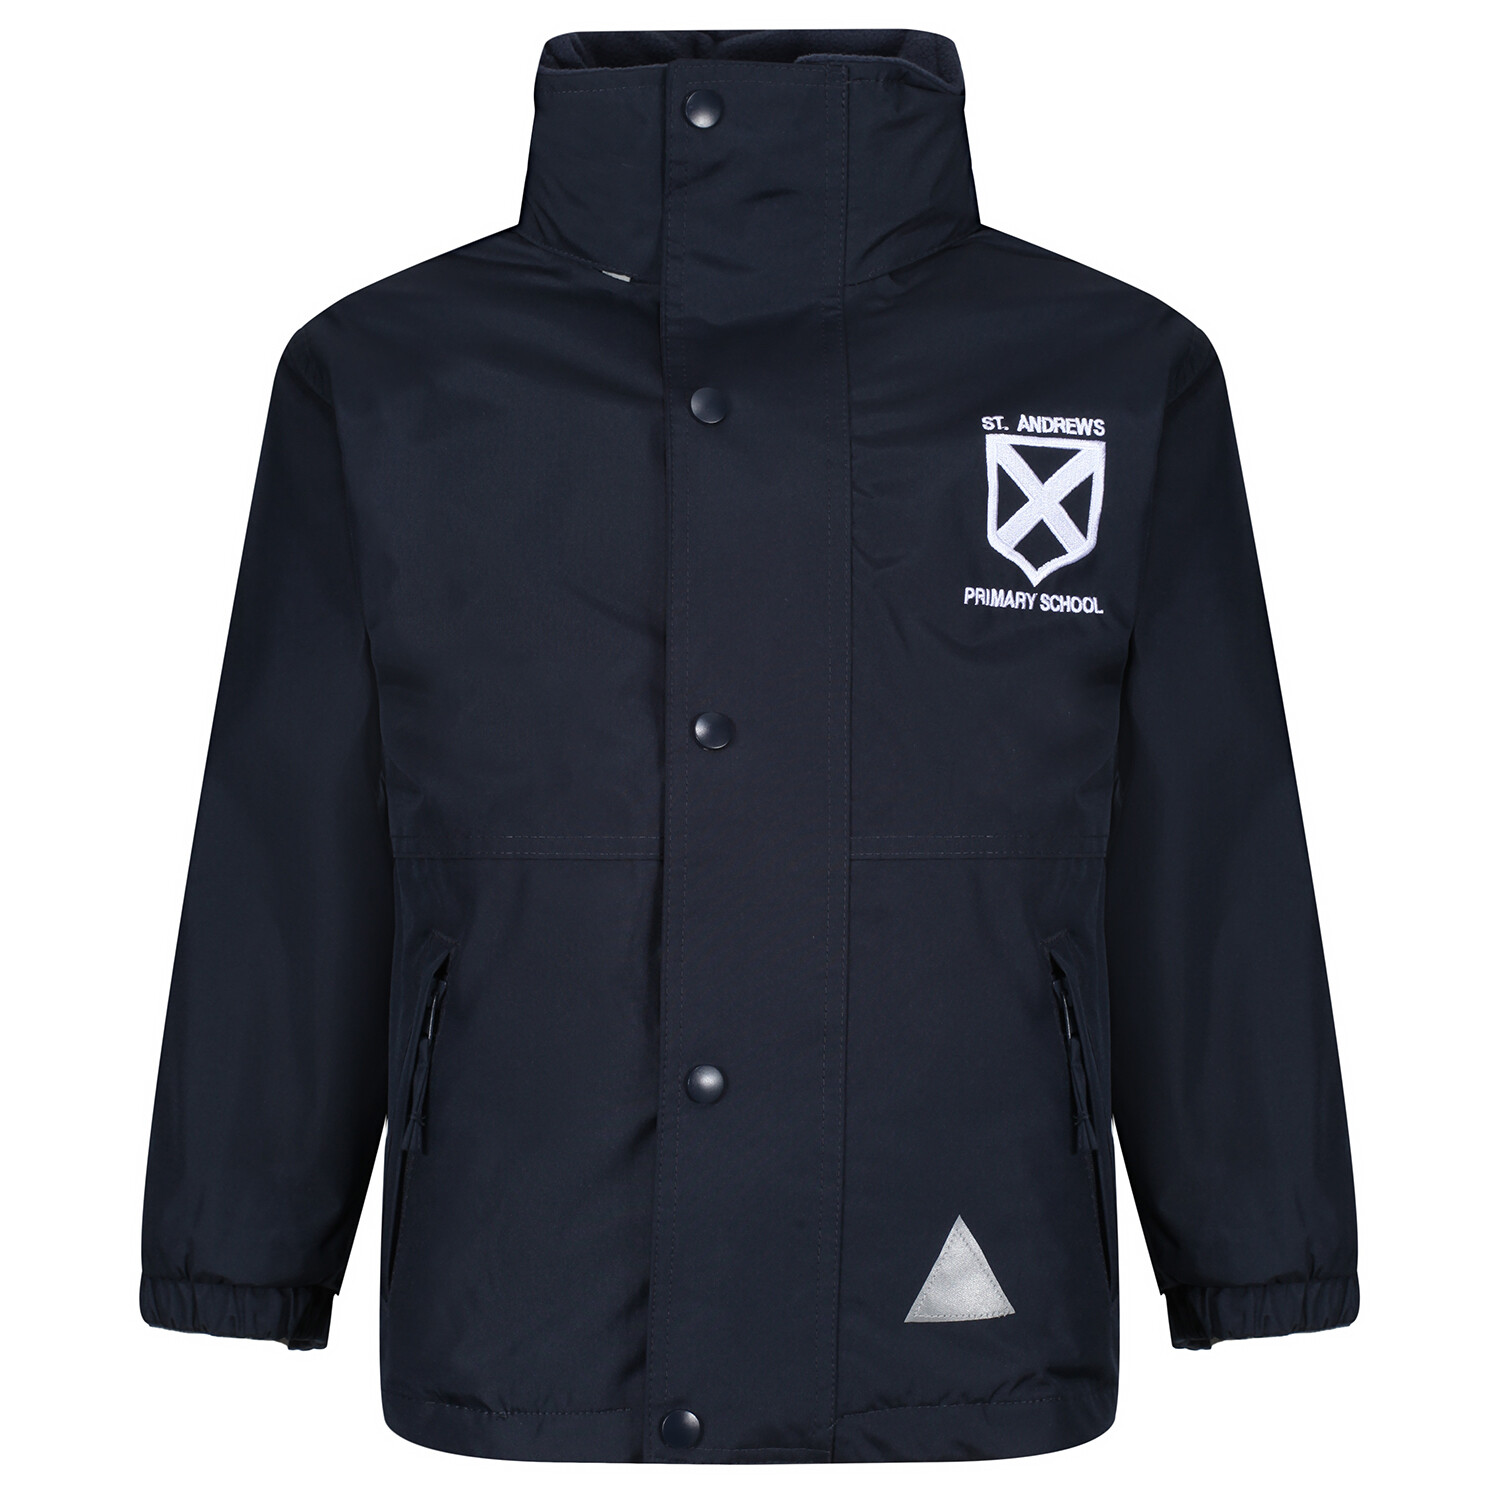 St Andrew's Primary Heavy Rain Jacket (Fleece lined)